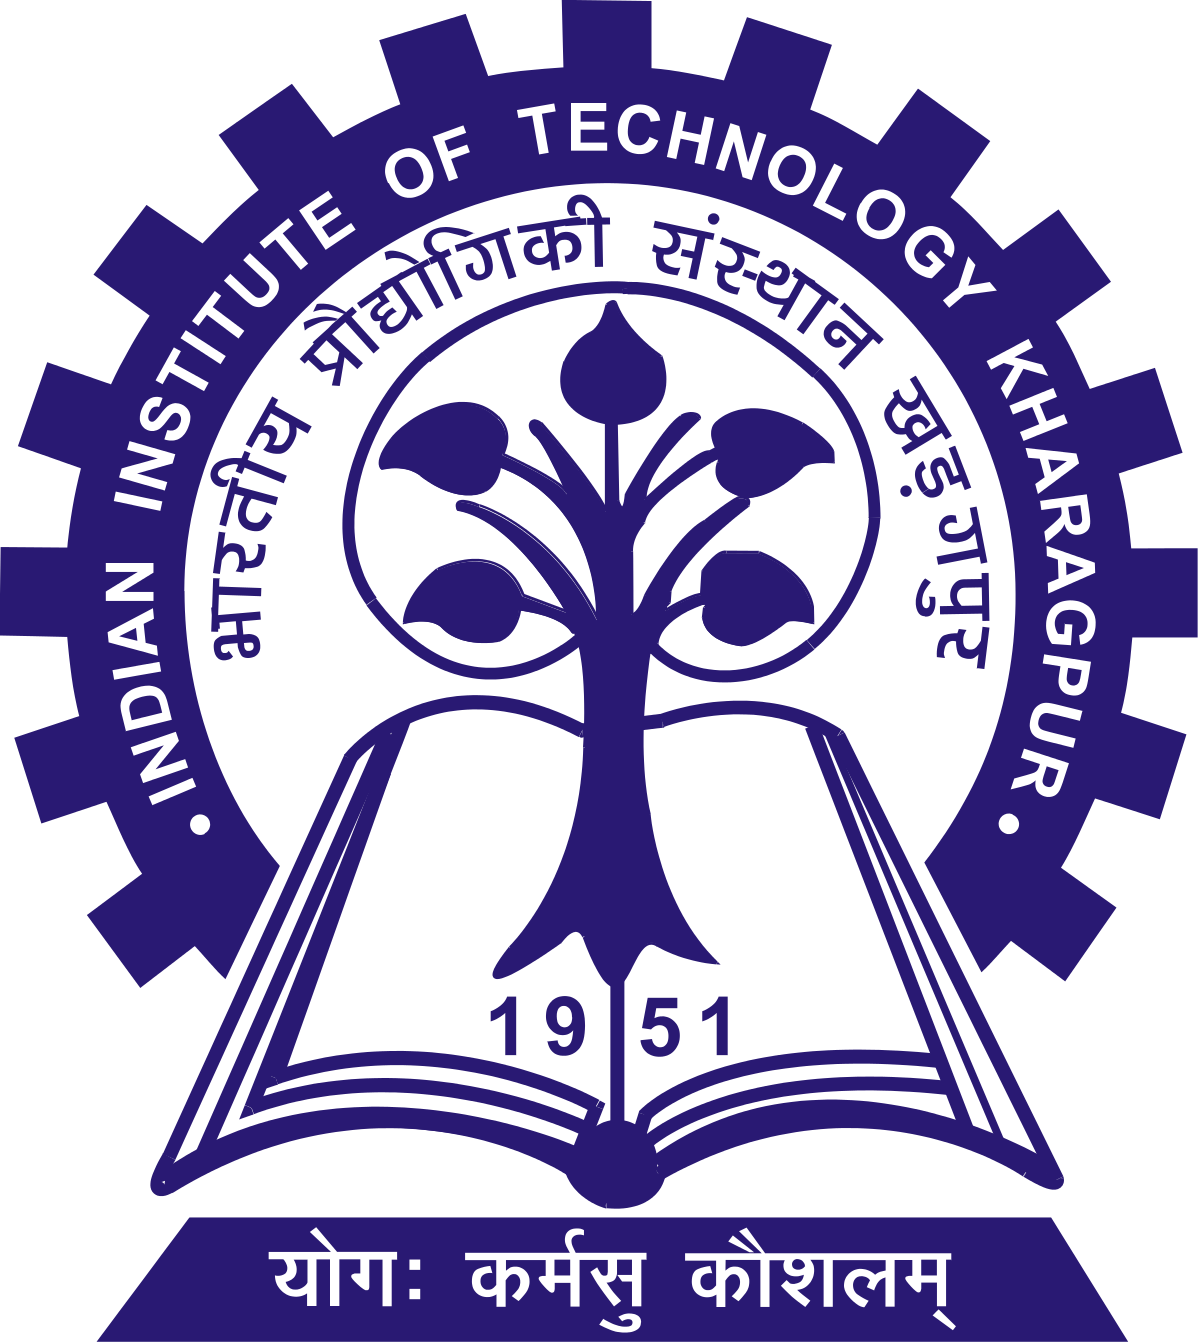 CfP: National Conference on Communications at IIT Kharagpur [Feb 21-23]: Submit by Oct 15: Expired